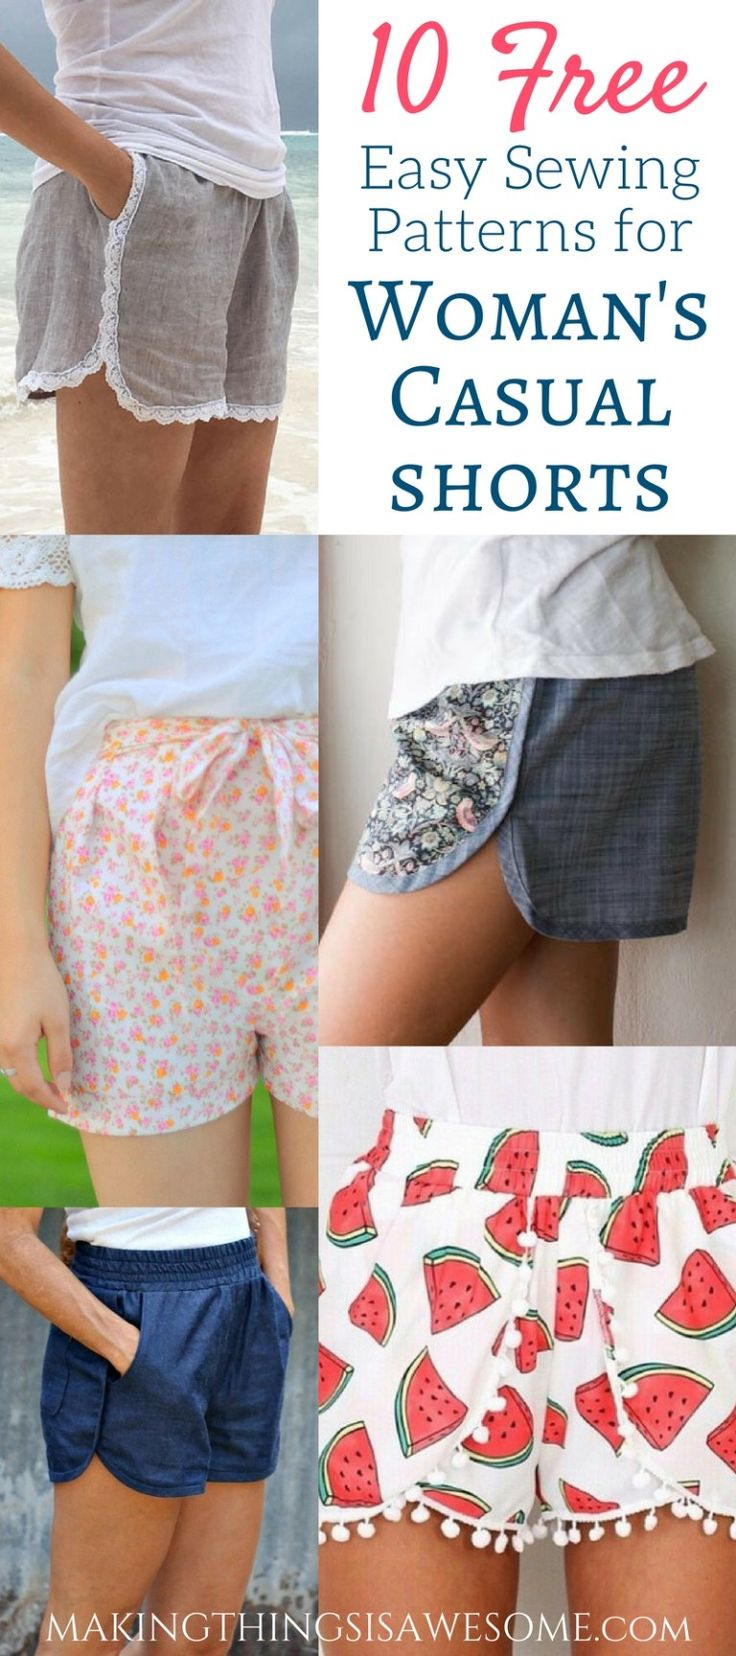 10 Free Woman's Casual Shorts Sewing Patterns: Round-up! – Making Things is …